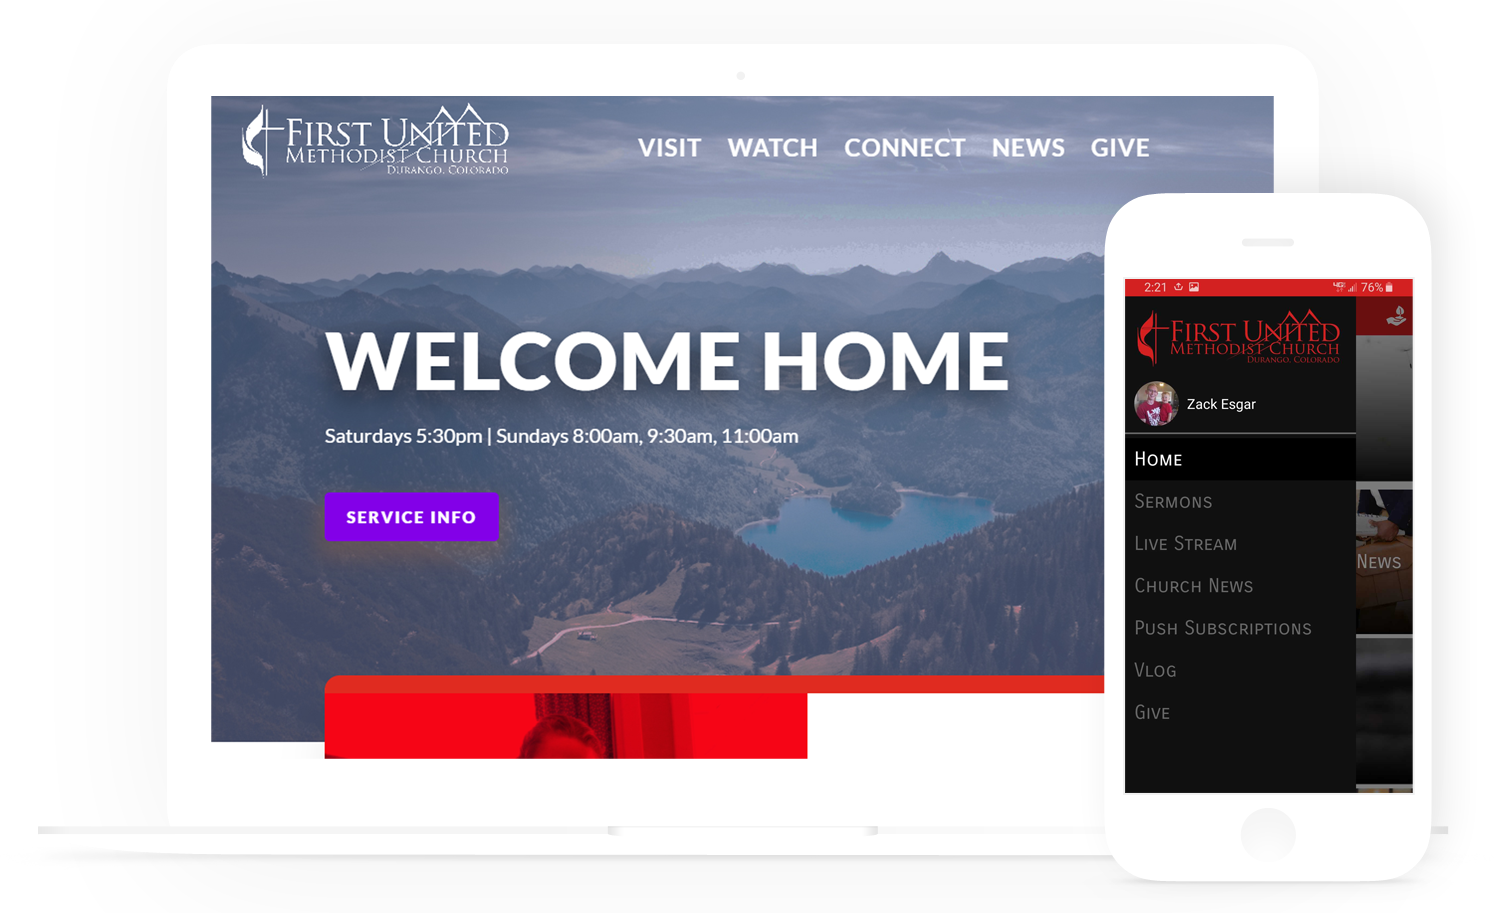 Church Websites and Mobile Apps - Church Communication Tool